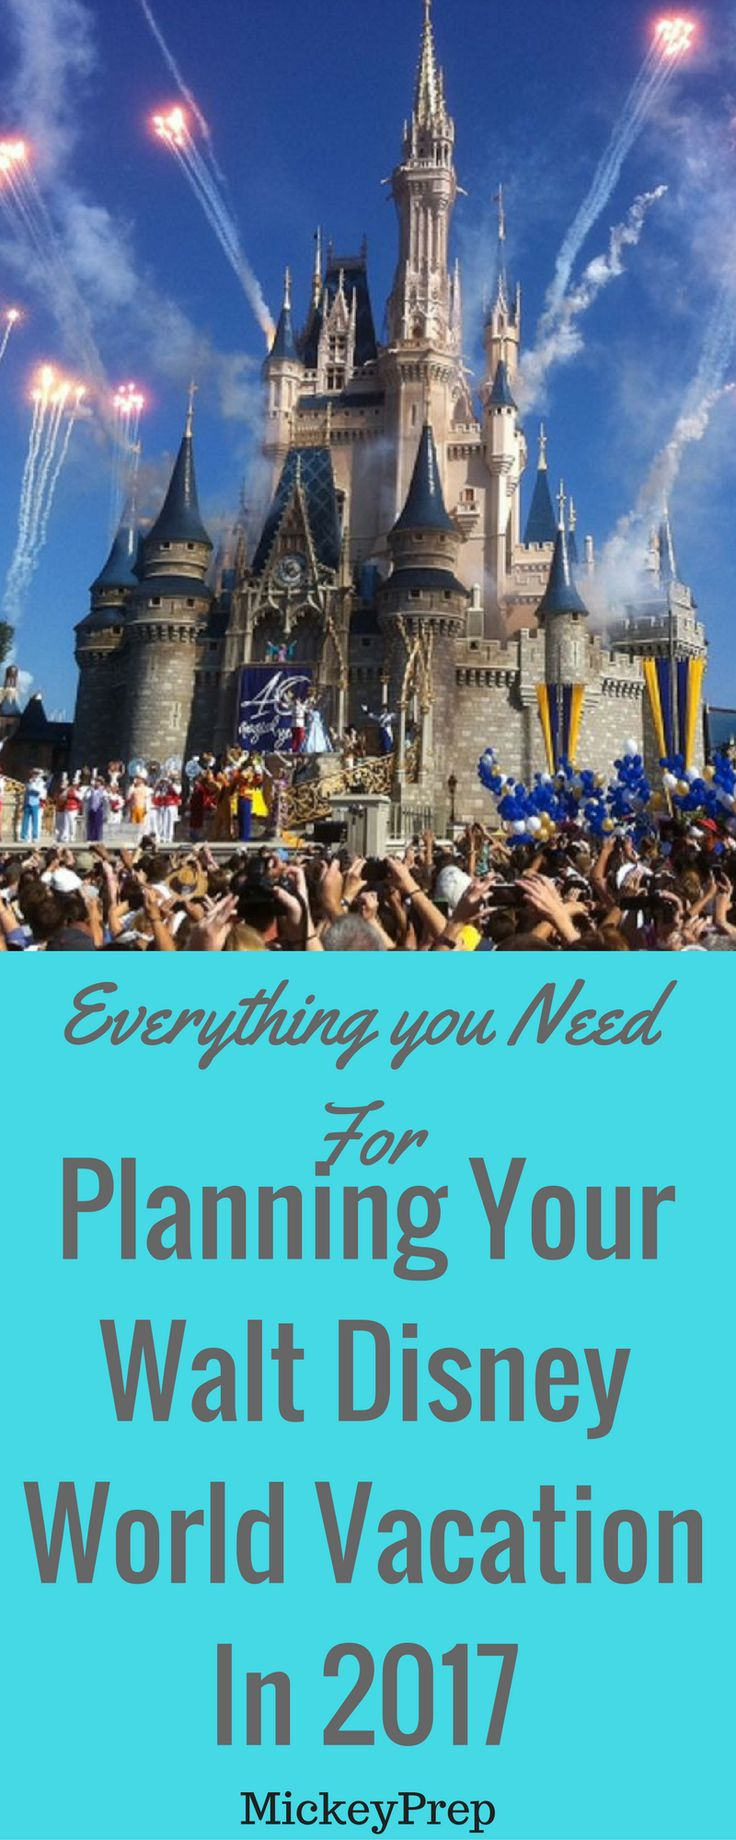 All you need to know to plan your perfect Walt Disney World vacation in 2017. Tips and tricks from a Disney pro for vacation plans!